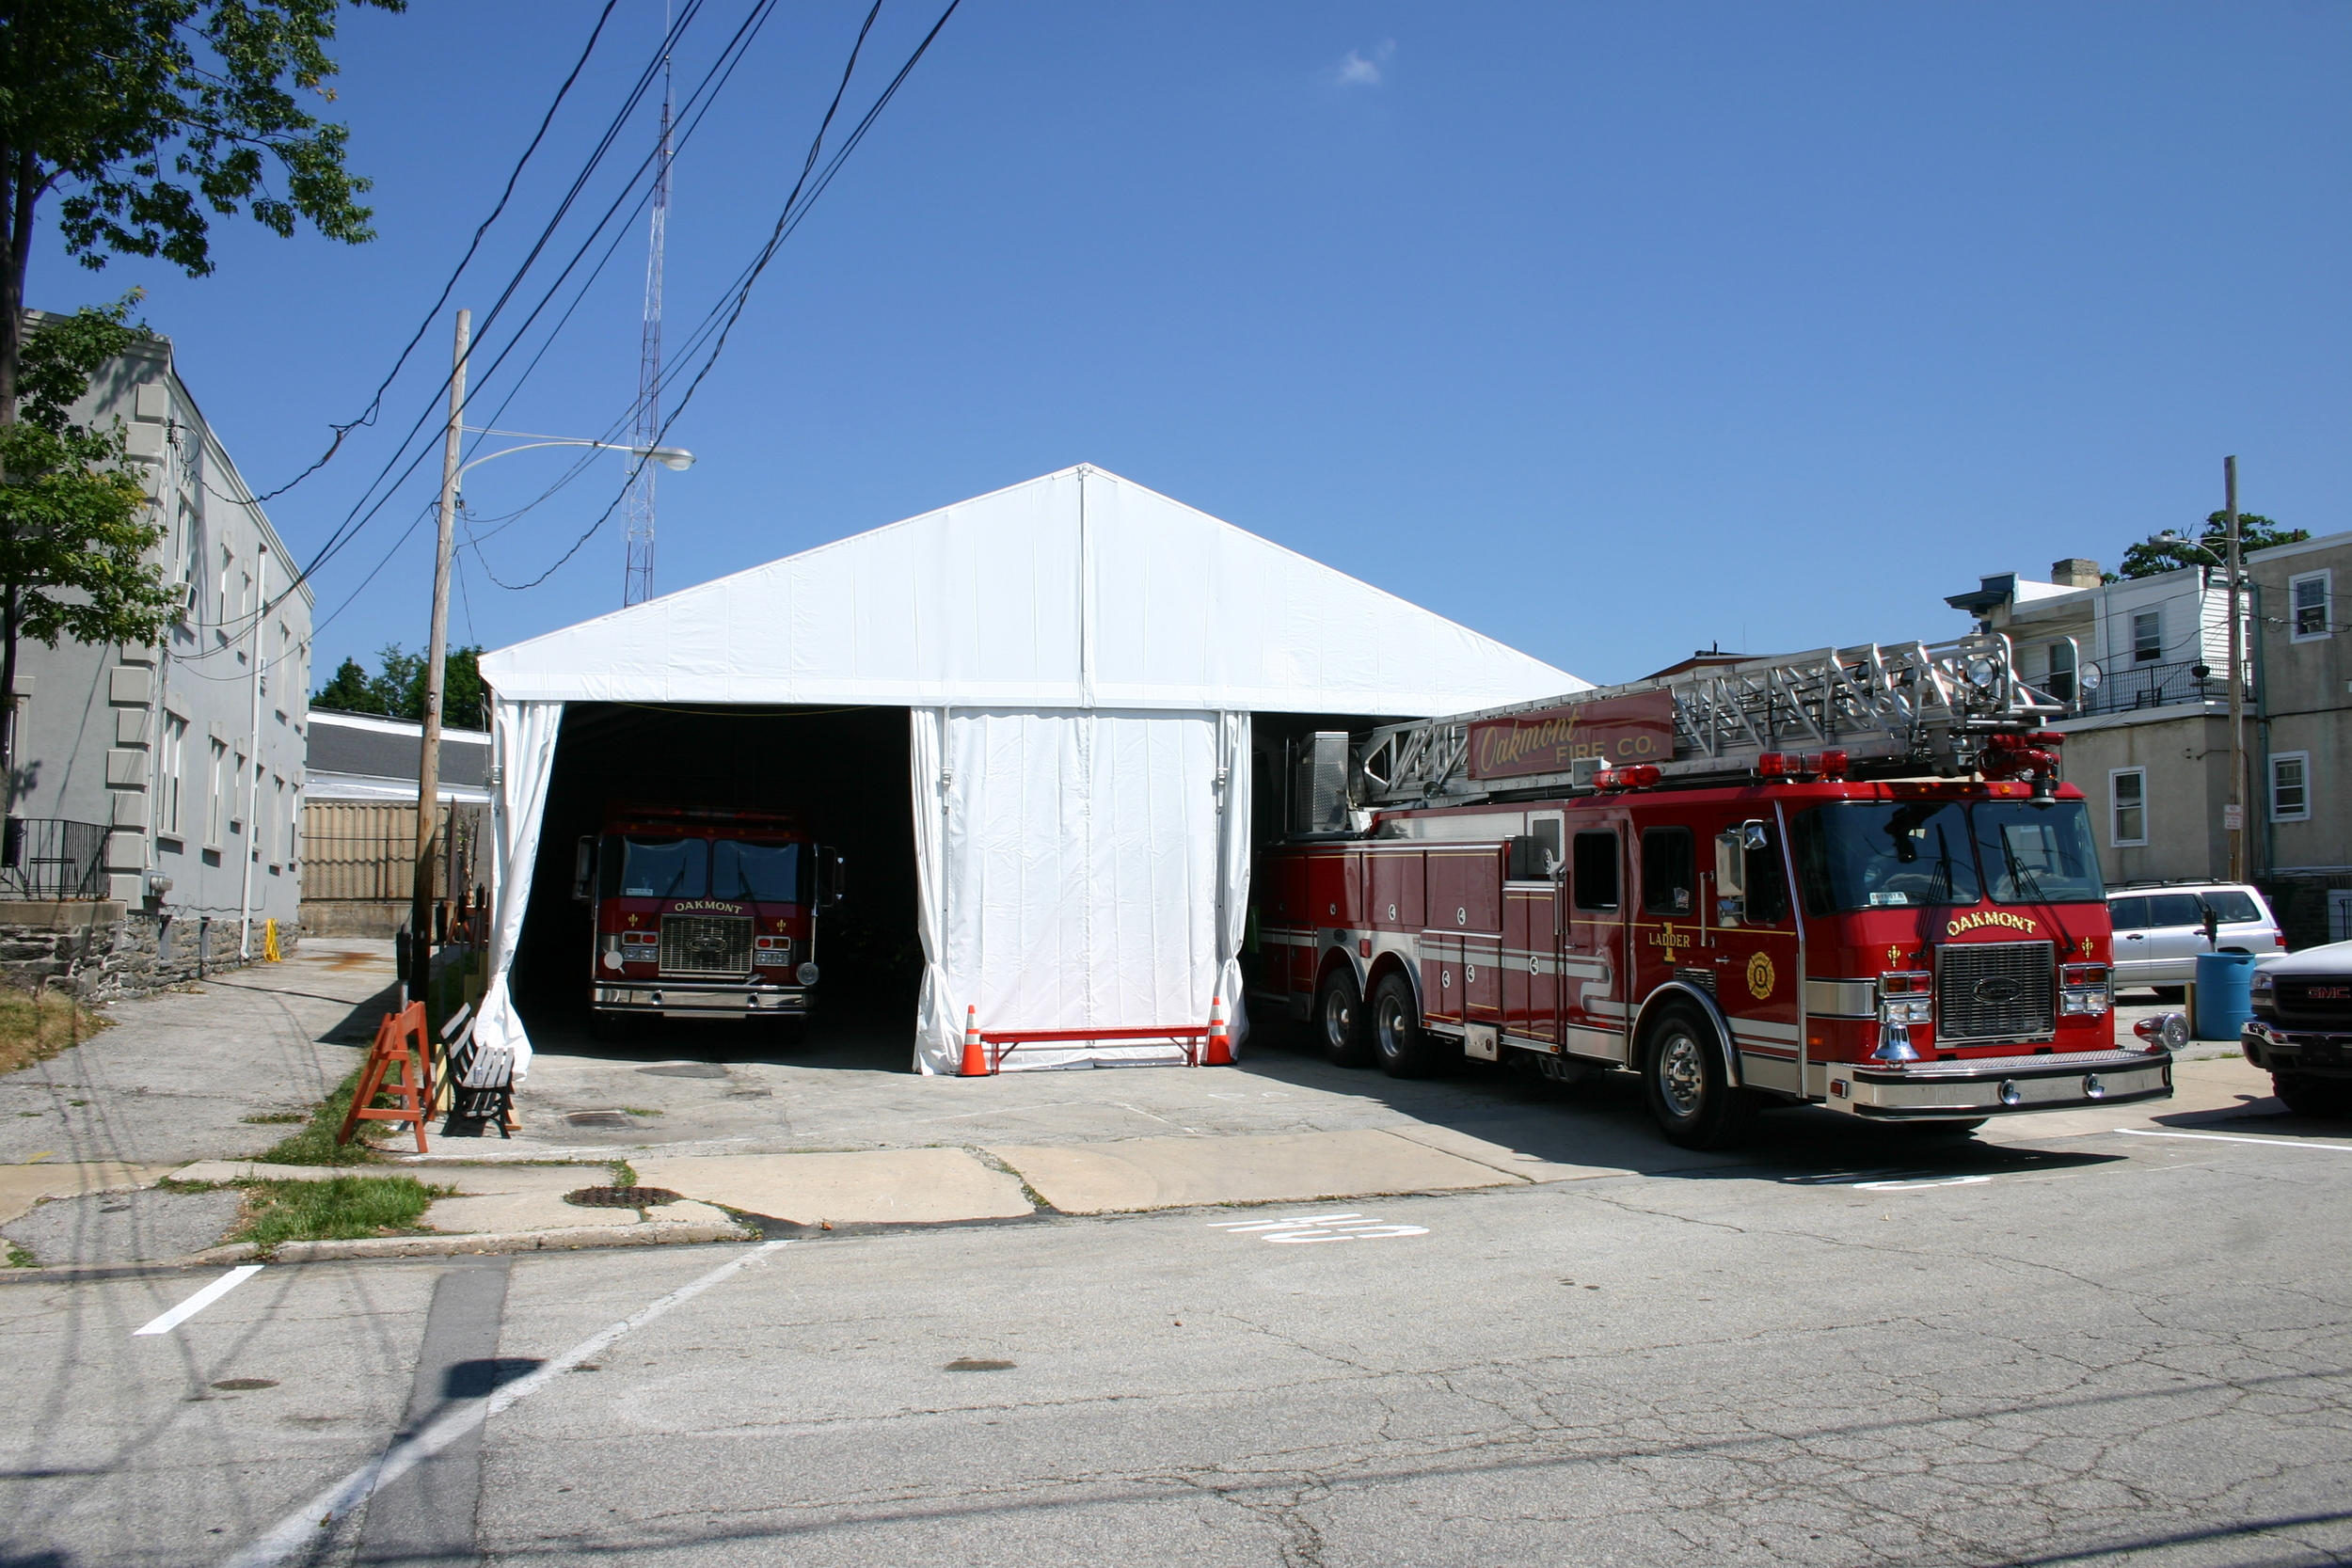 Temporary Firehouse Tent